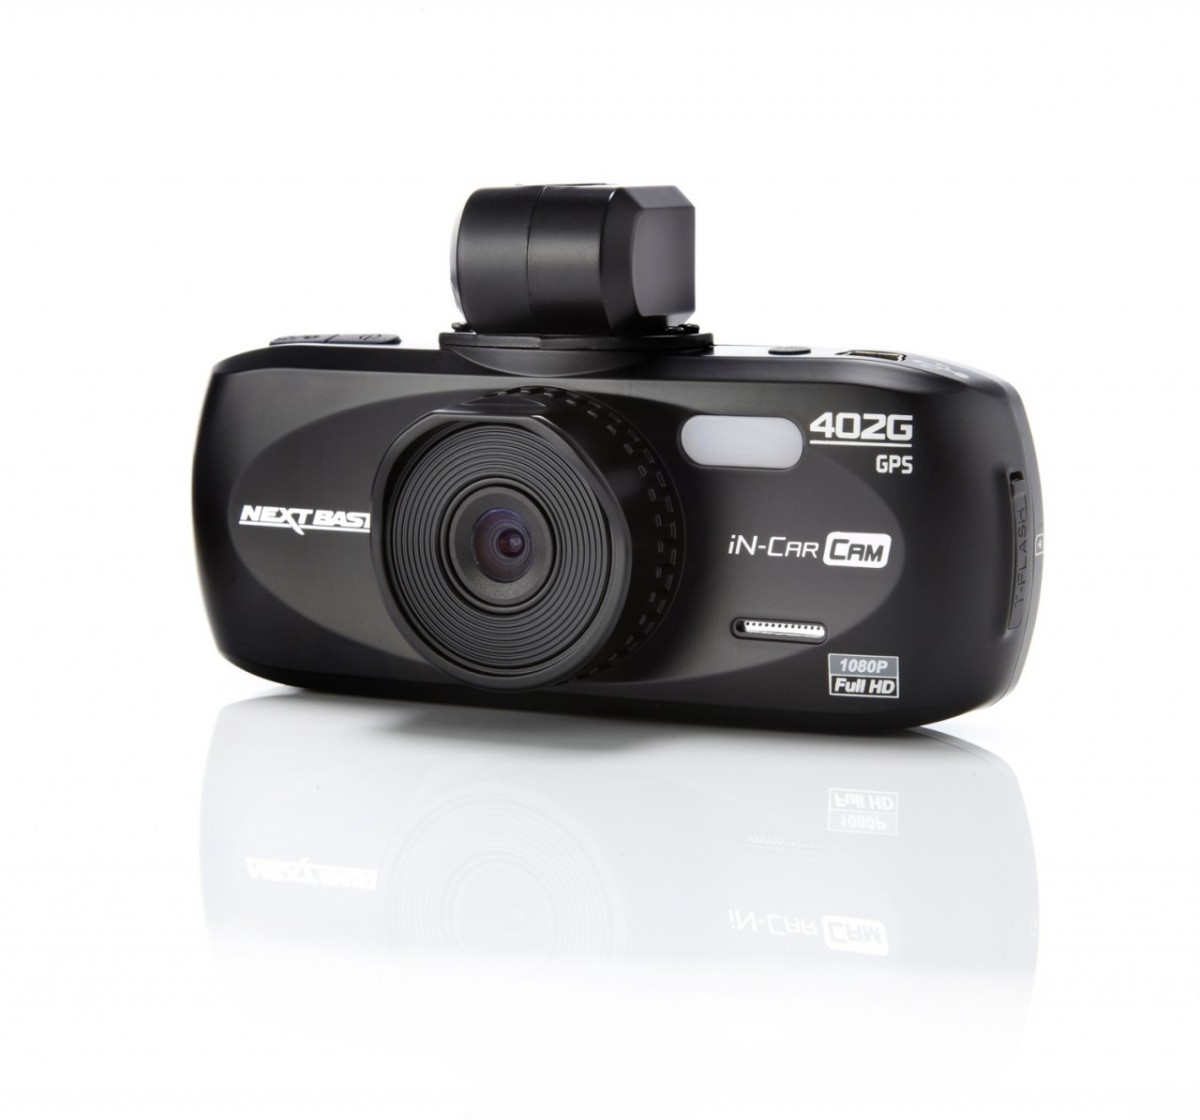 The Sunday Times Driving rated the Nextbase In-Car Cam 402 Professional as the best in-car dashcam for over £100